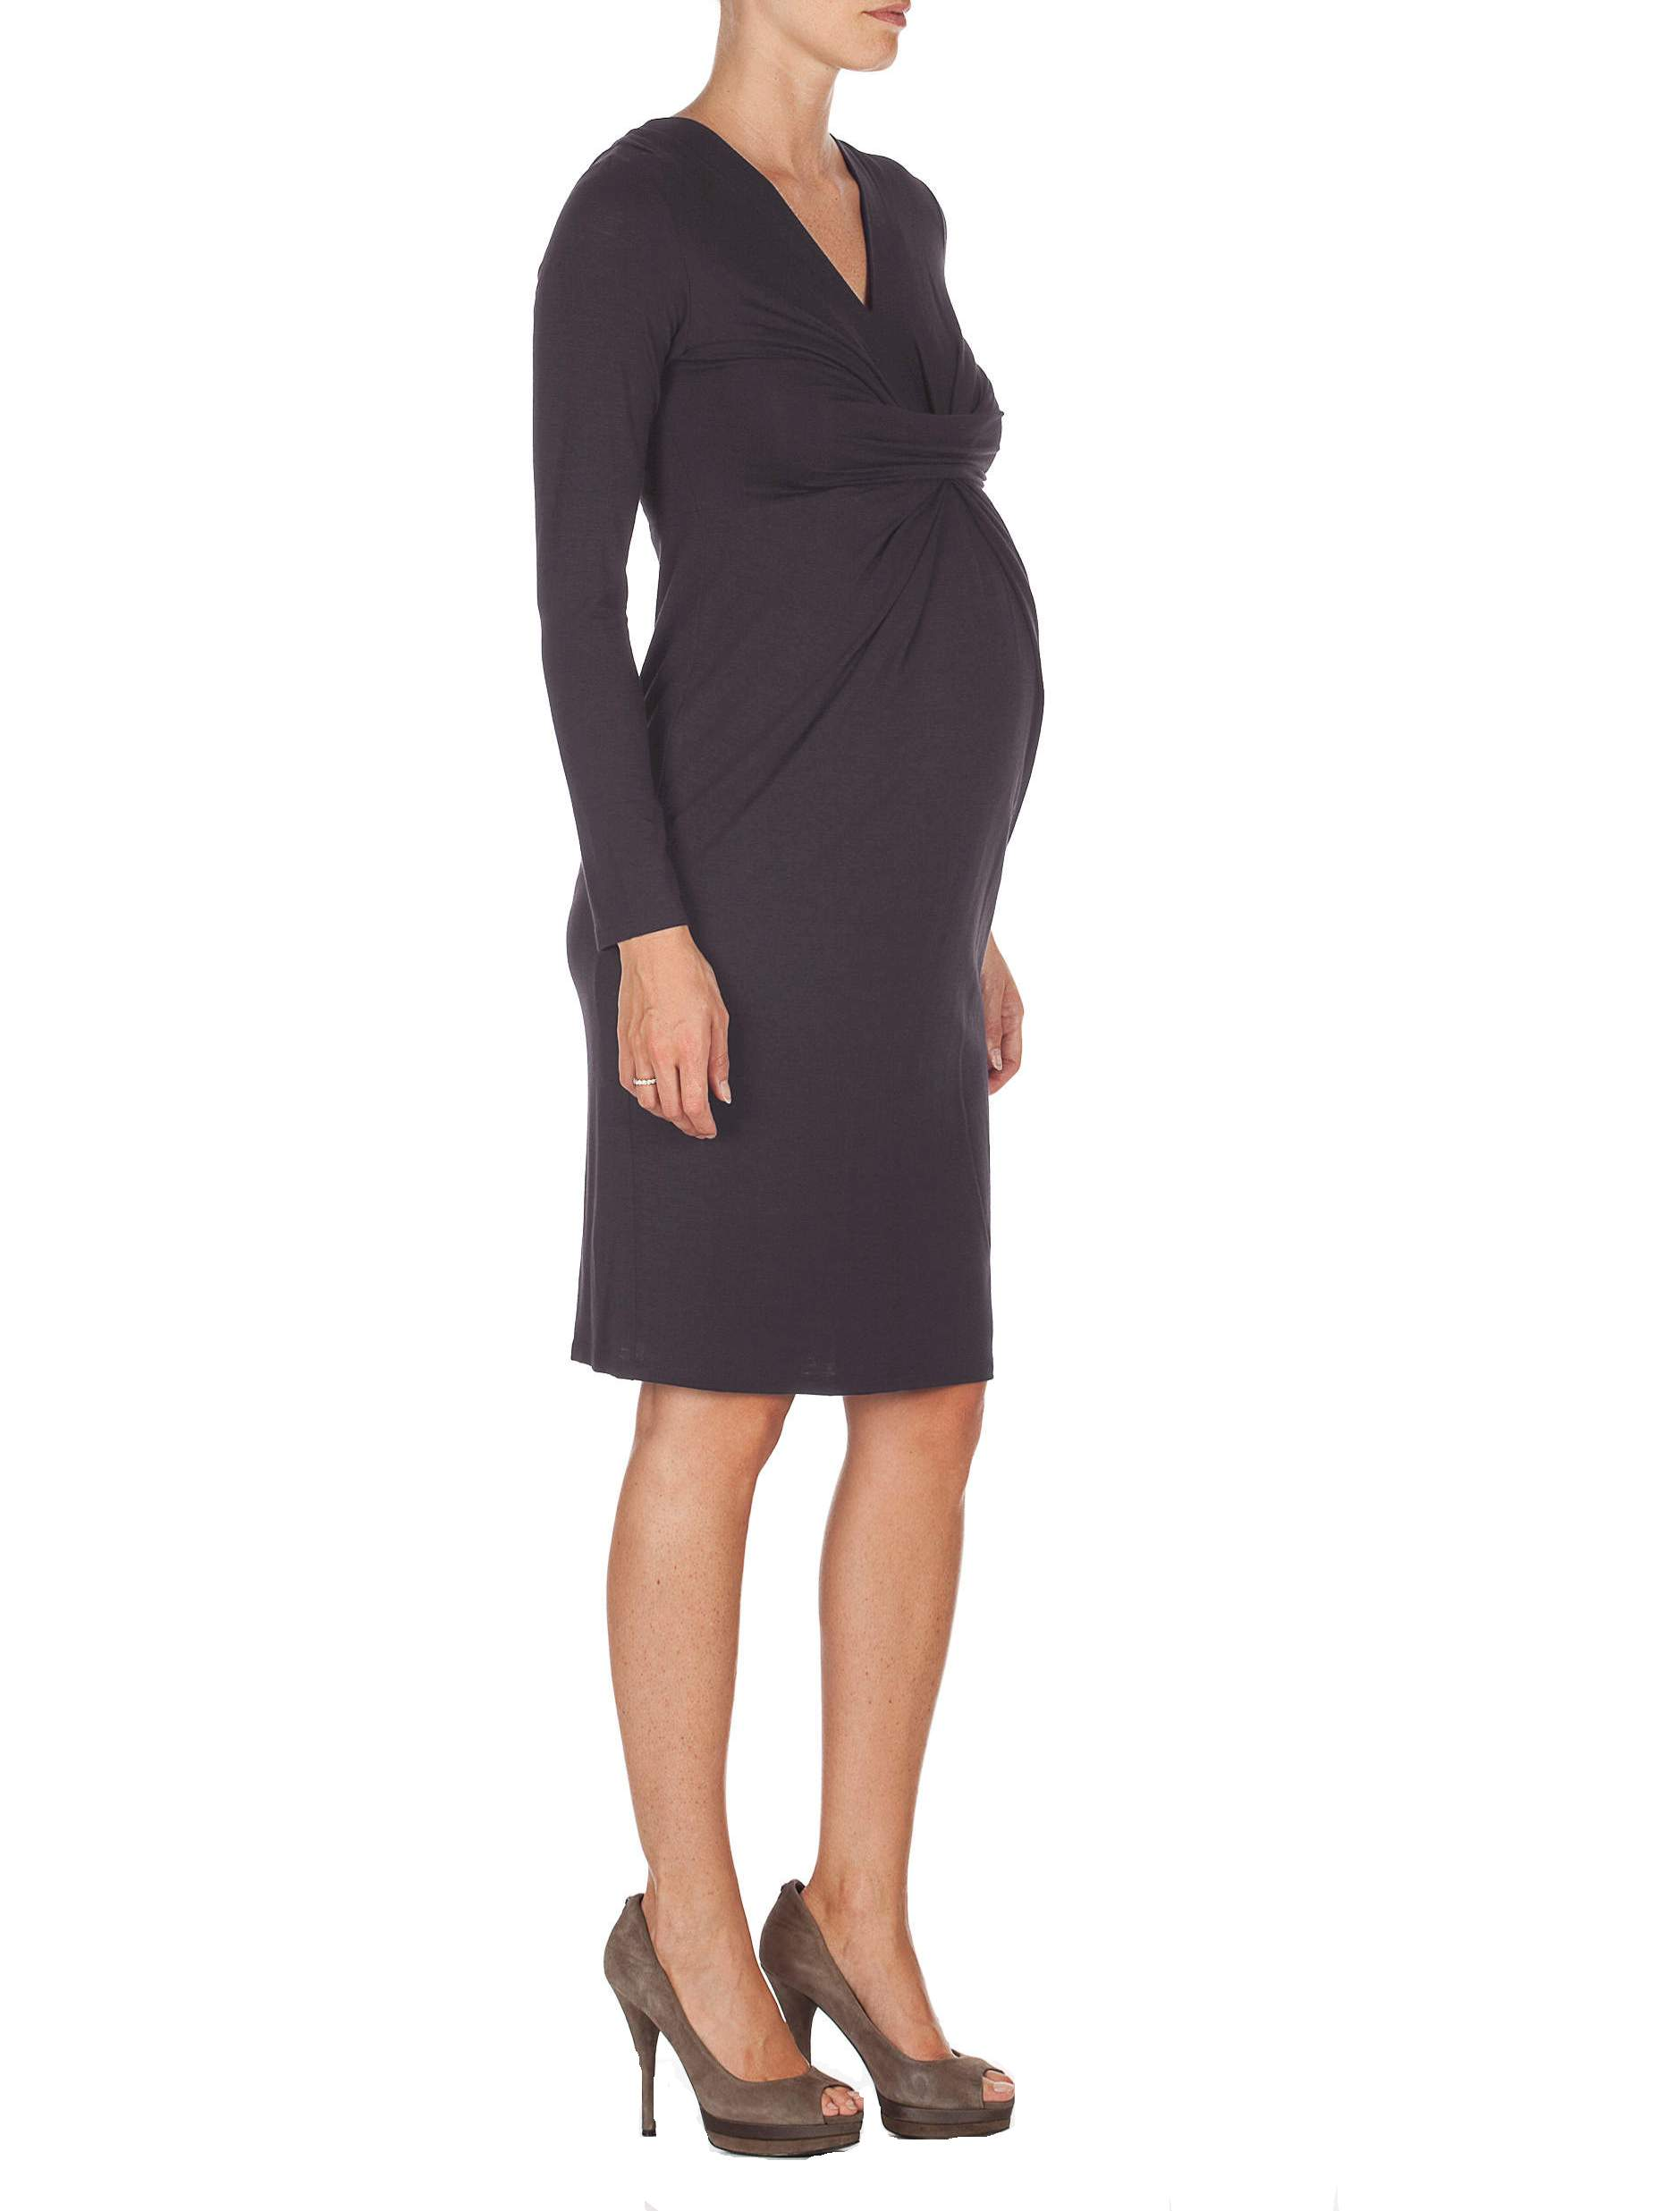 Maternity Dress with Twist Detailing